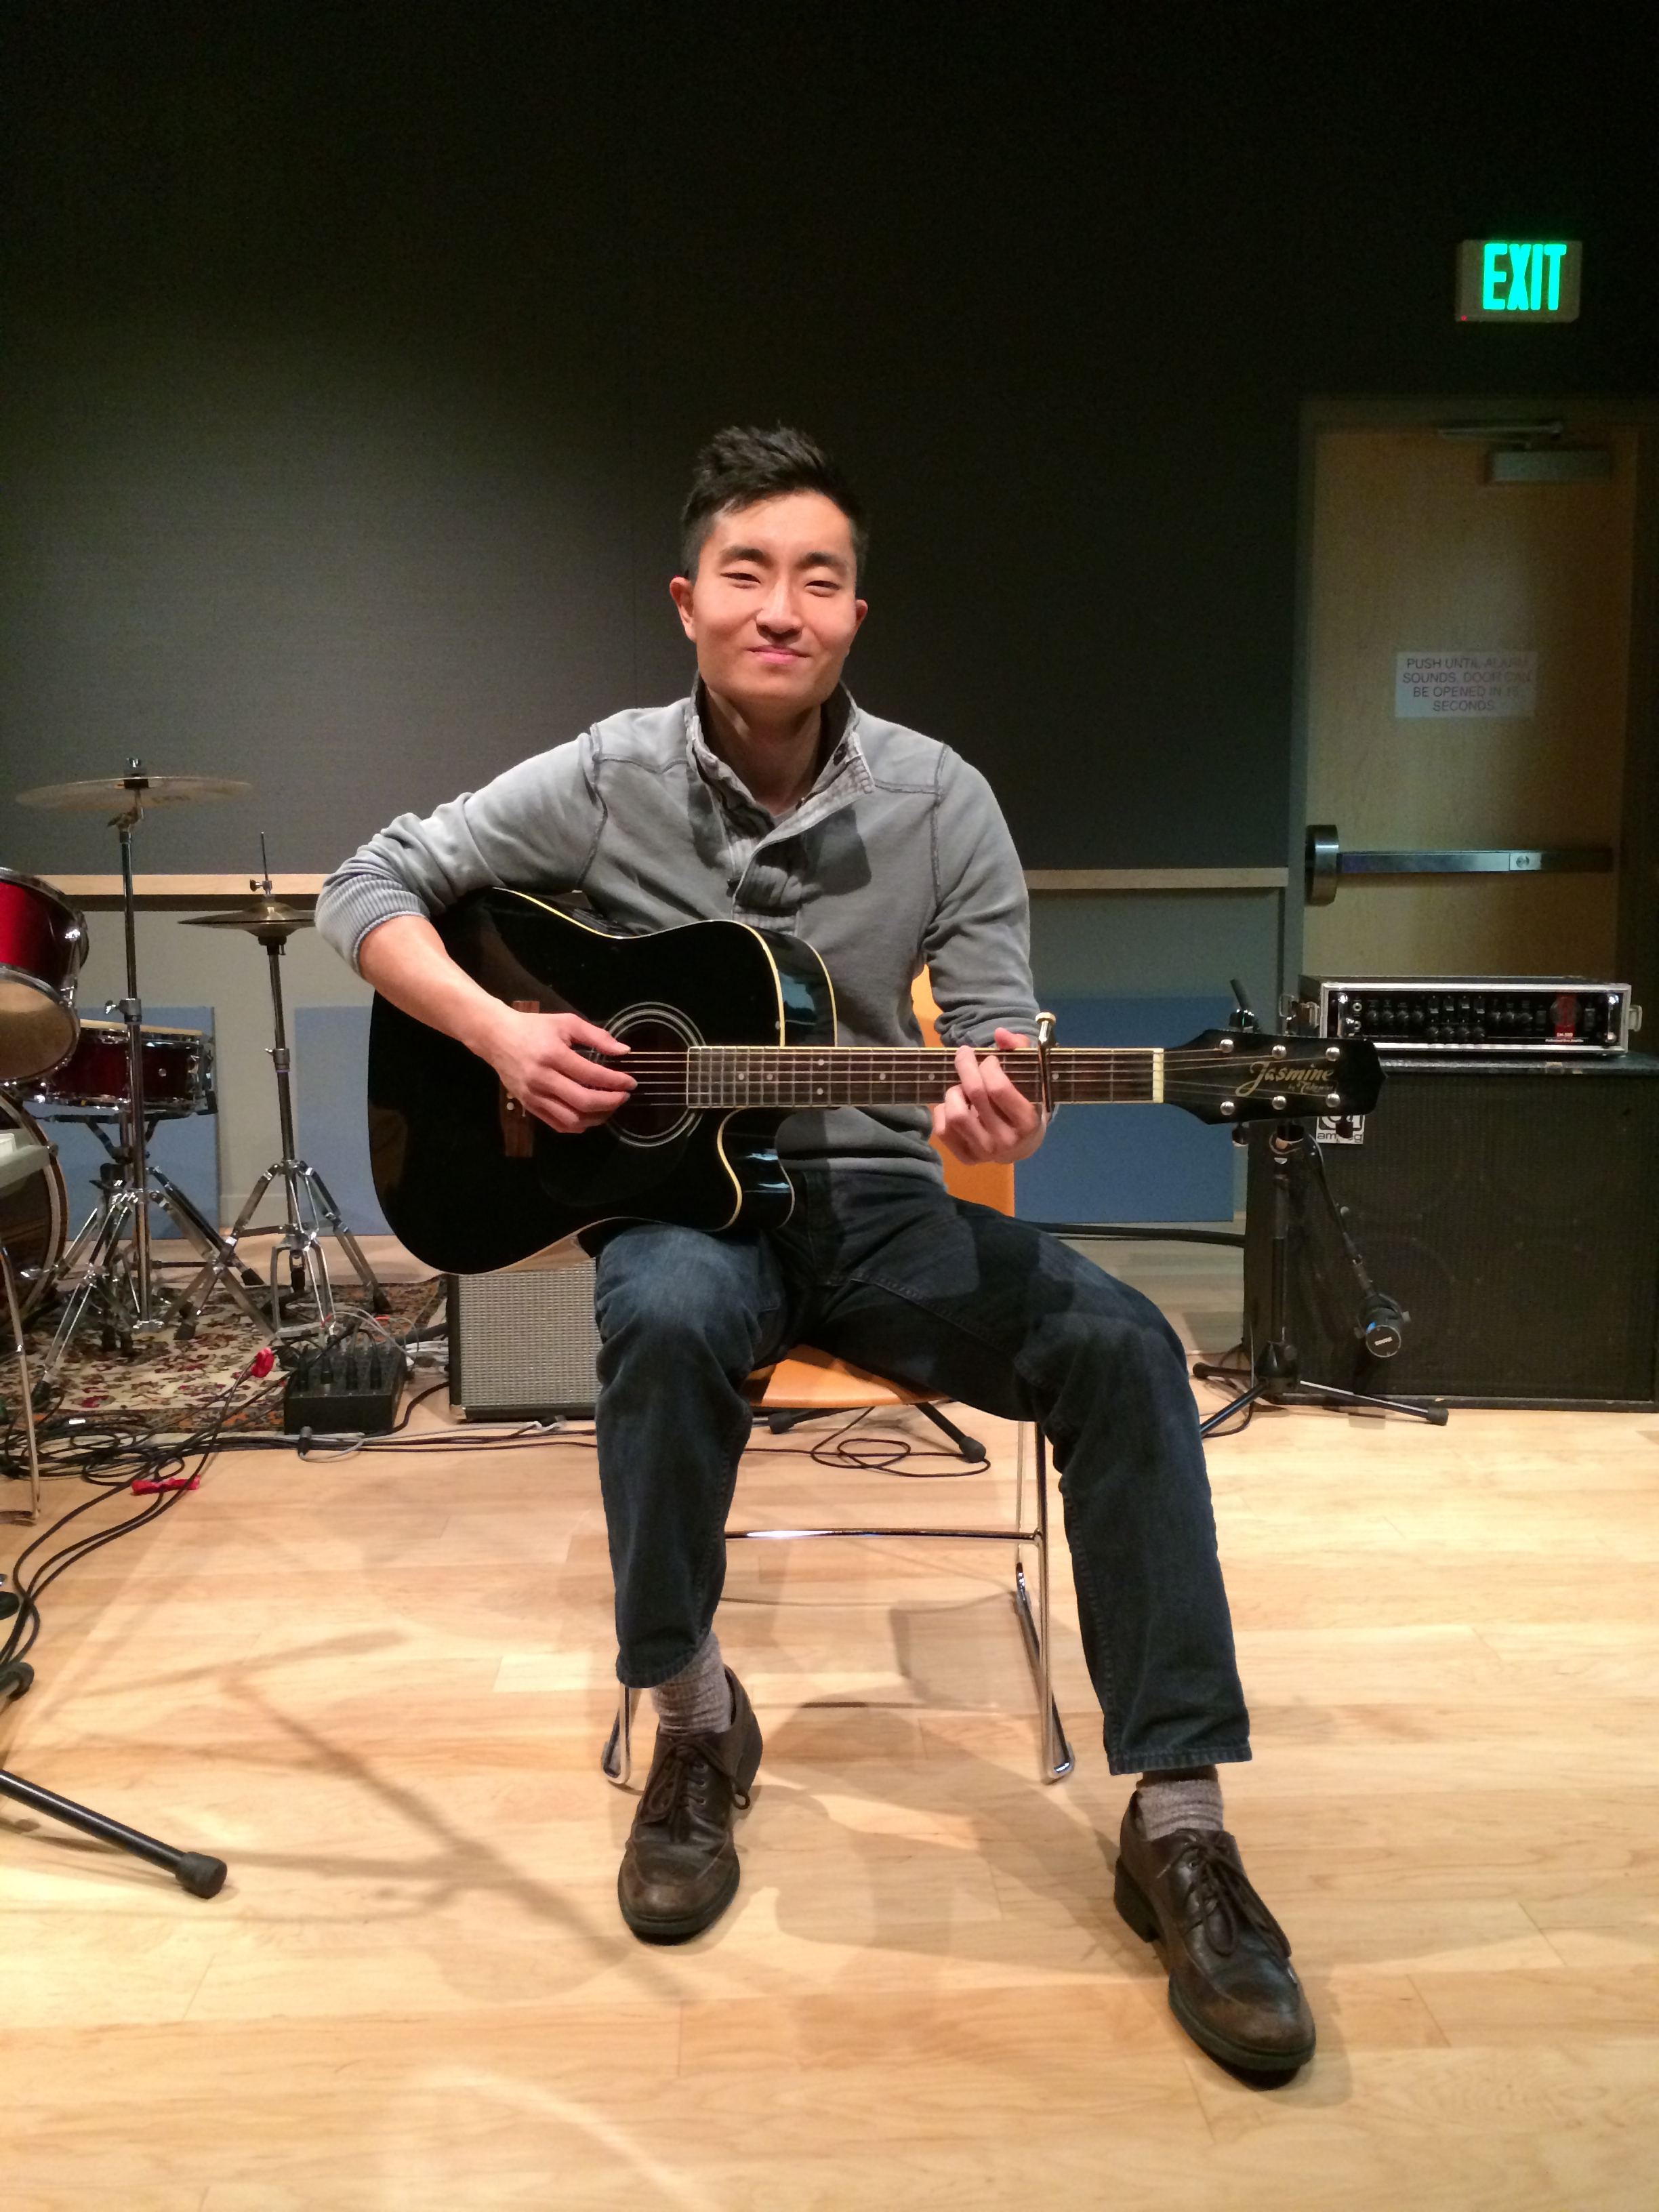 Baltimore soul singer/songwriter Jae Jin, live in studio at WTMD.